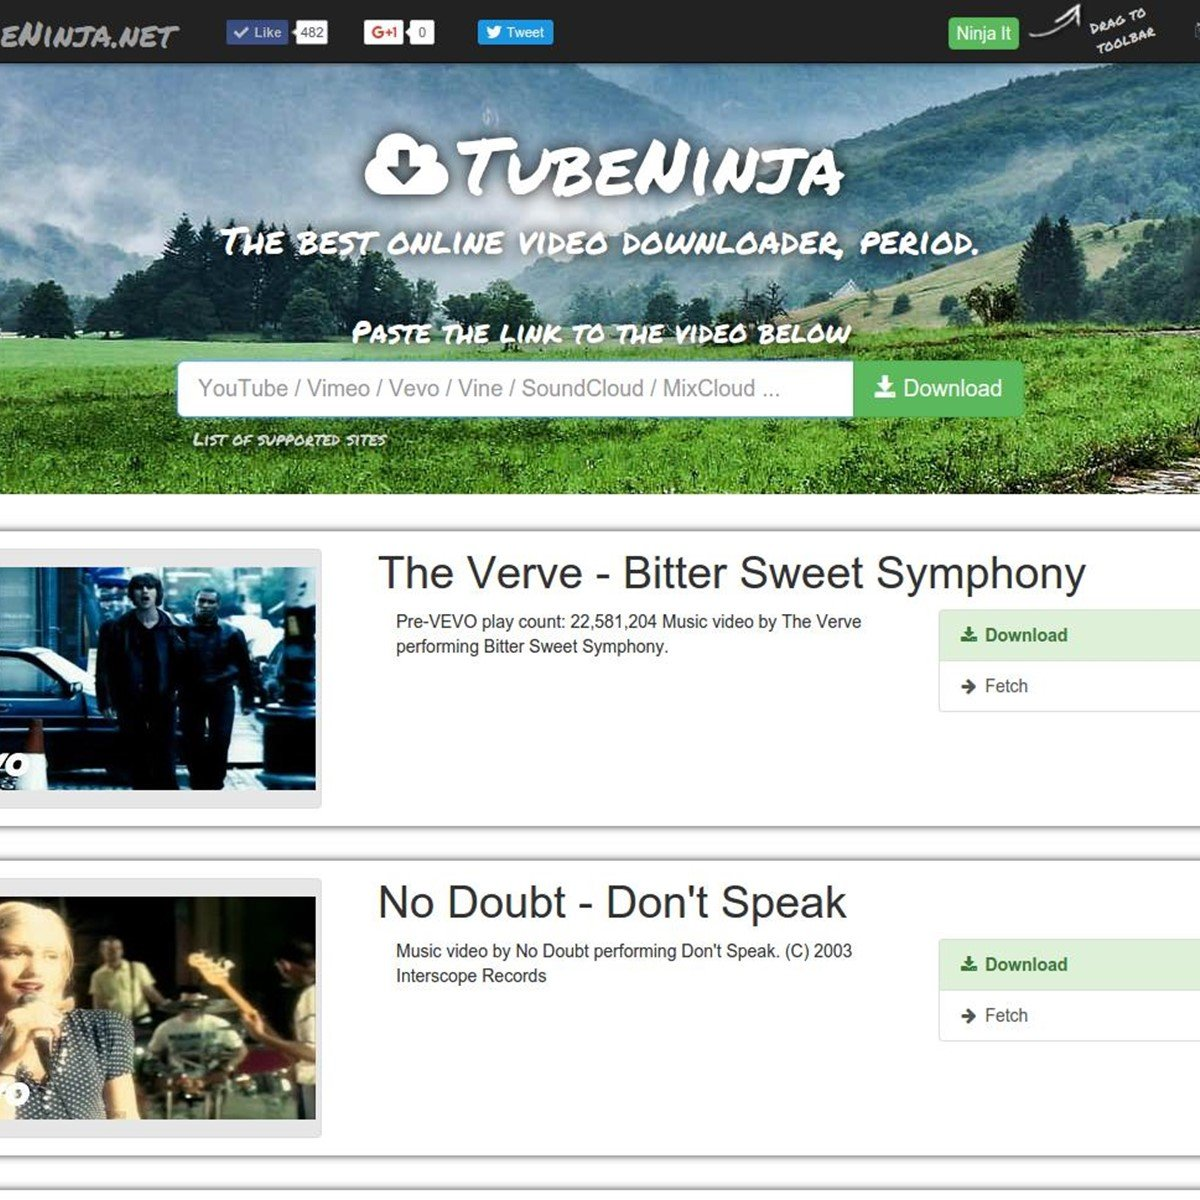 TubeNinja net Alternatives for Google Chrome - AlternativeTo net